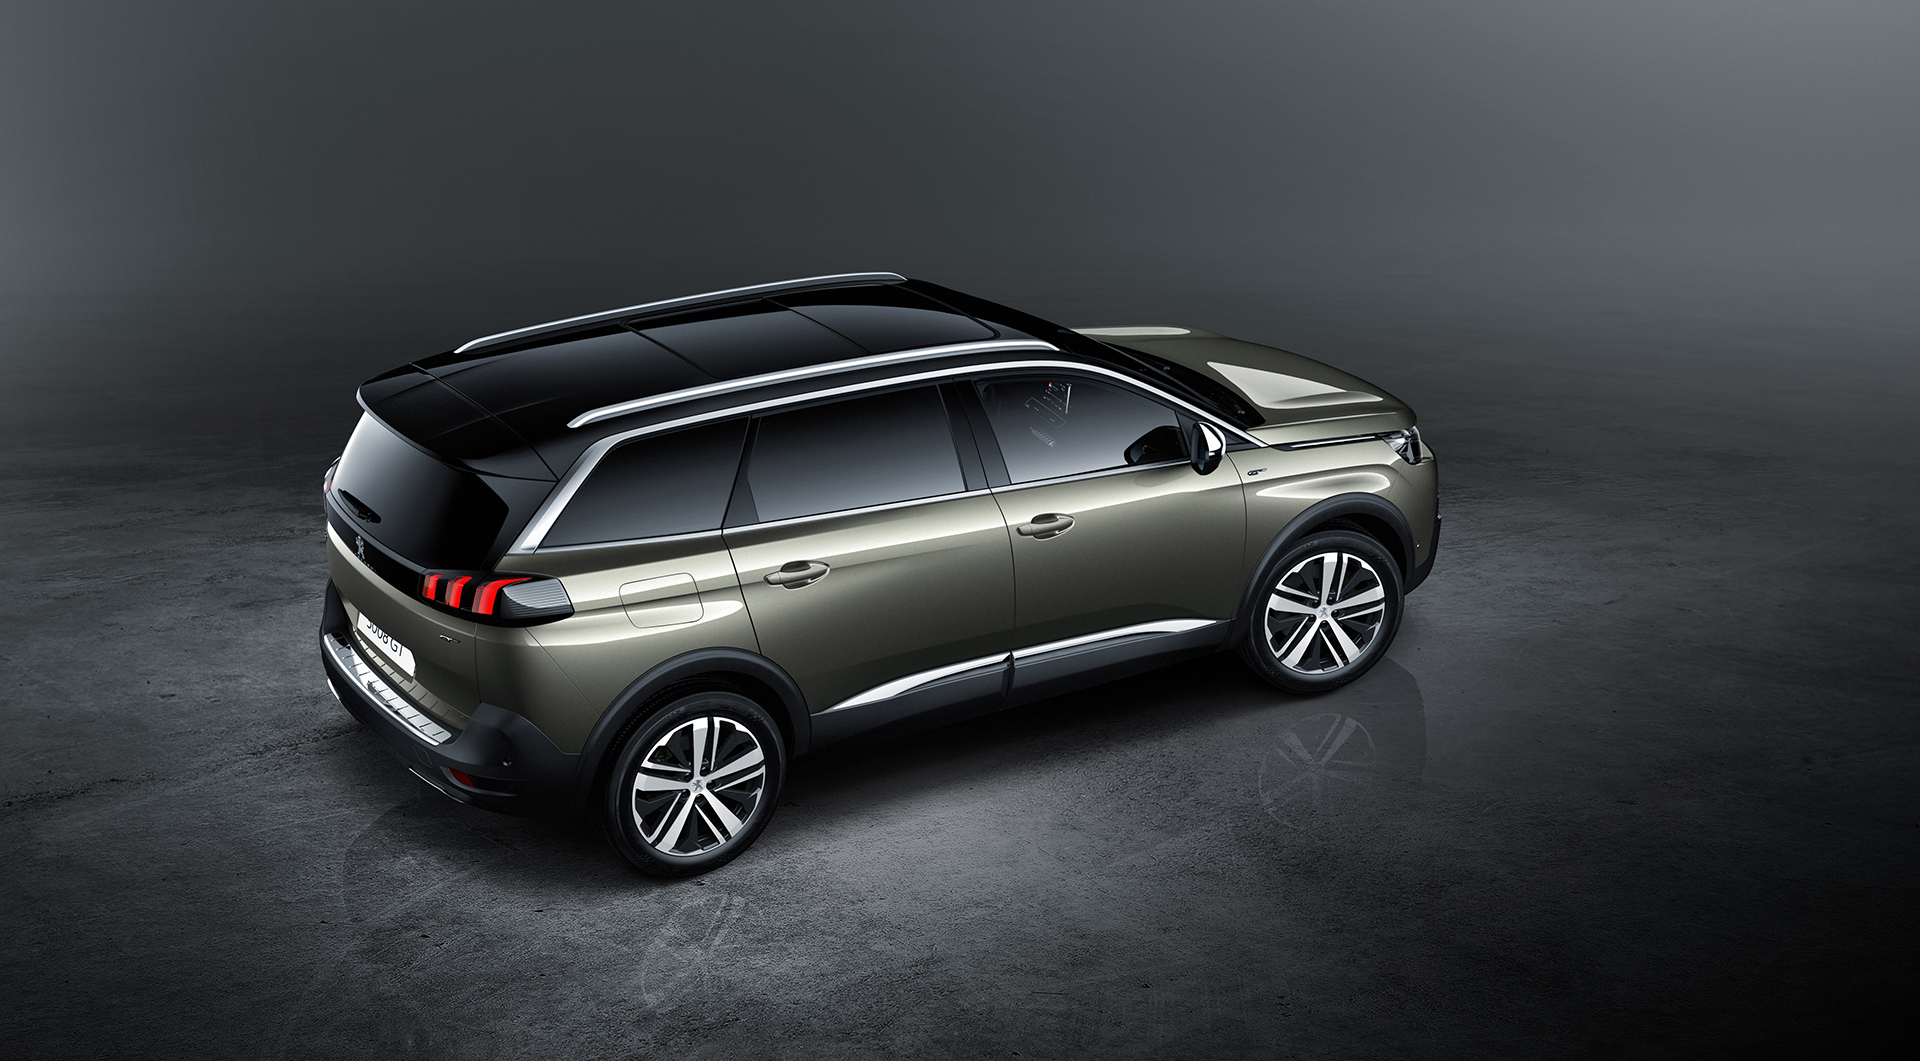 peugeot 5008 le grand lion sportif utility vehicle. Black Bedroom Furniture Sets. Home Design Ideas